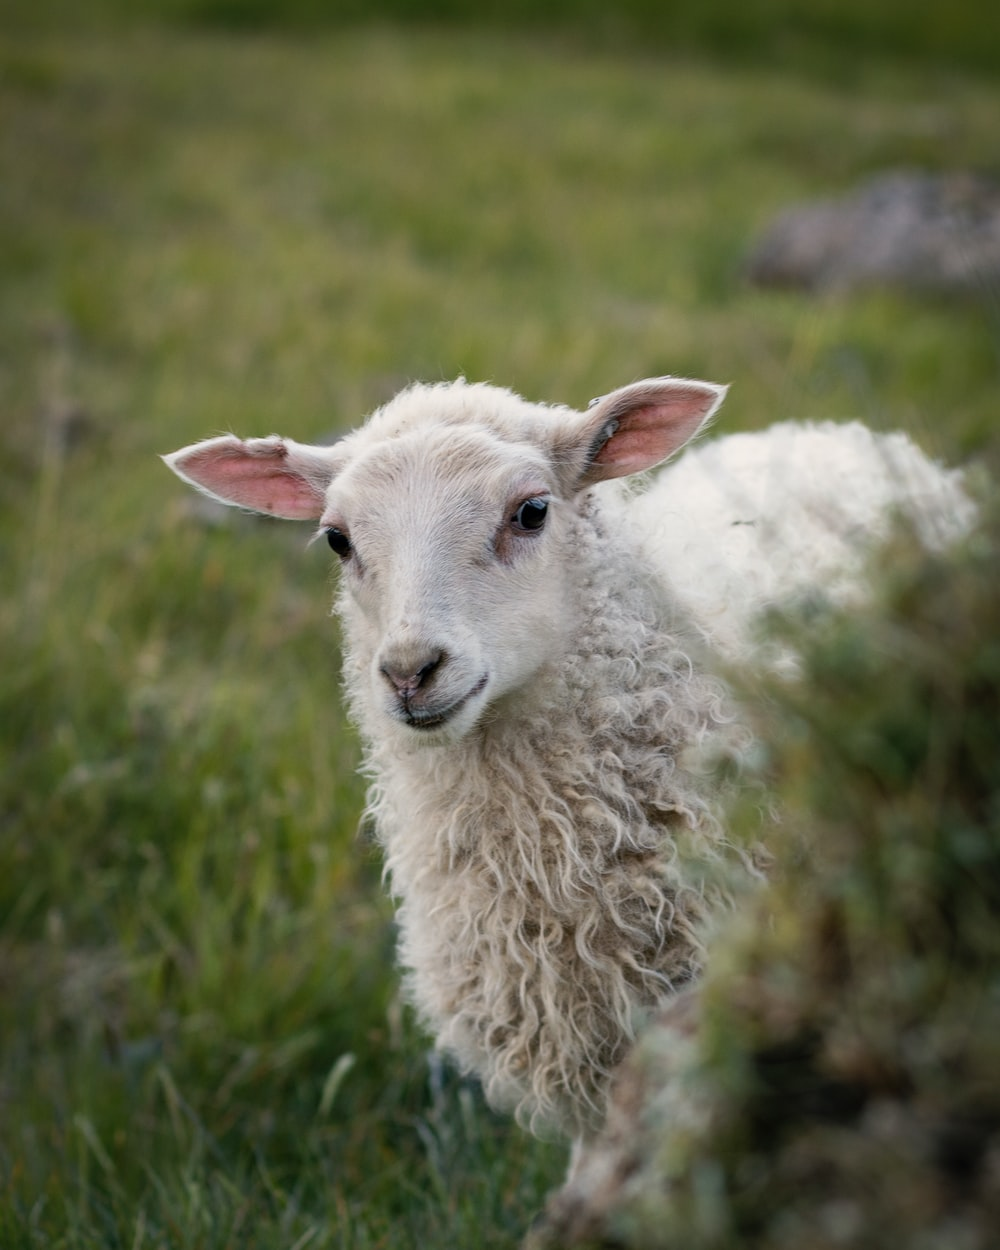 white sheep standing on green grass